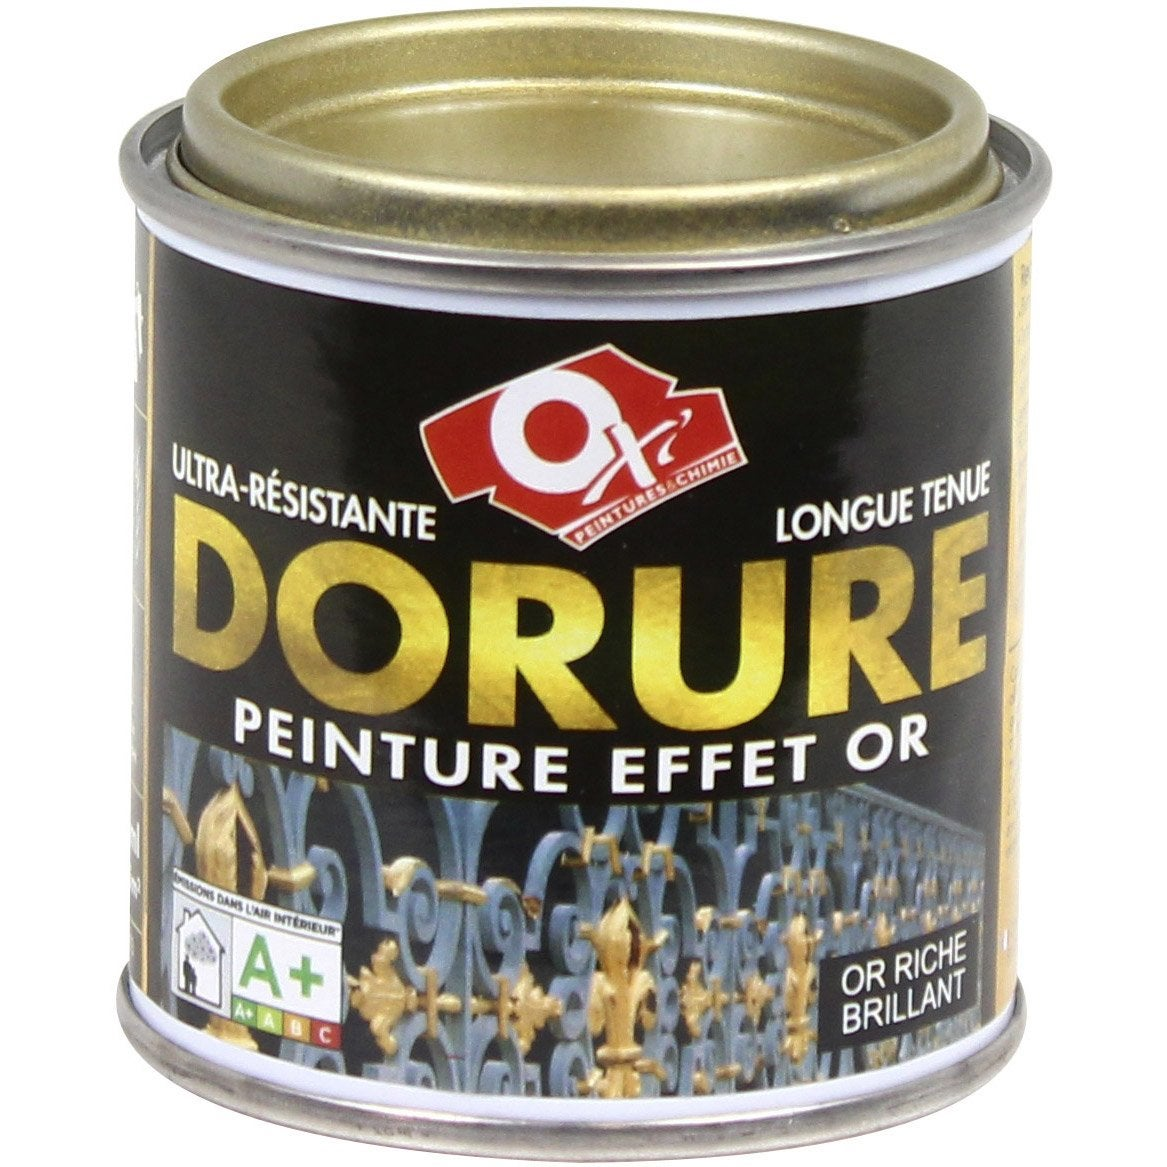 Dorure patin oxytol or riche l leroy merlin for Peindre un miroir dore